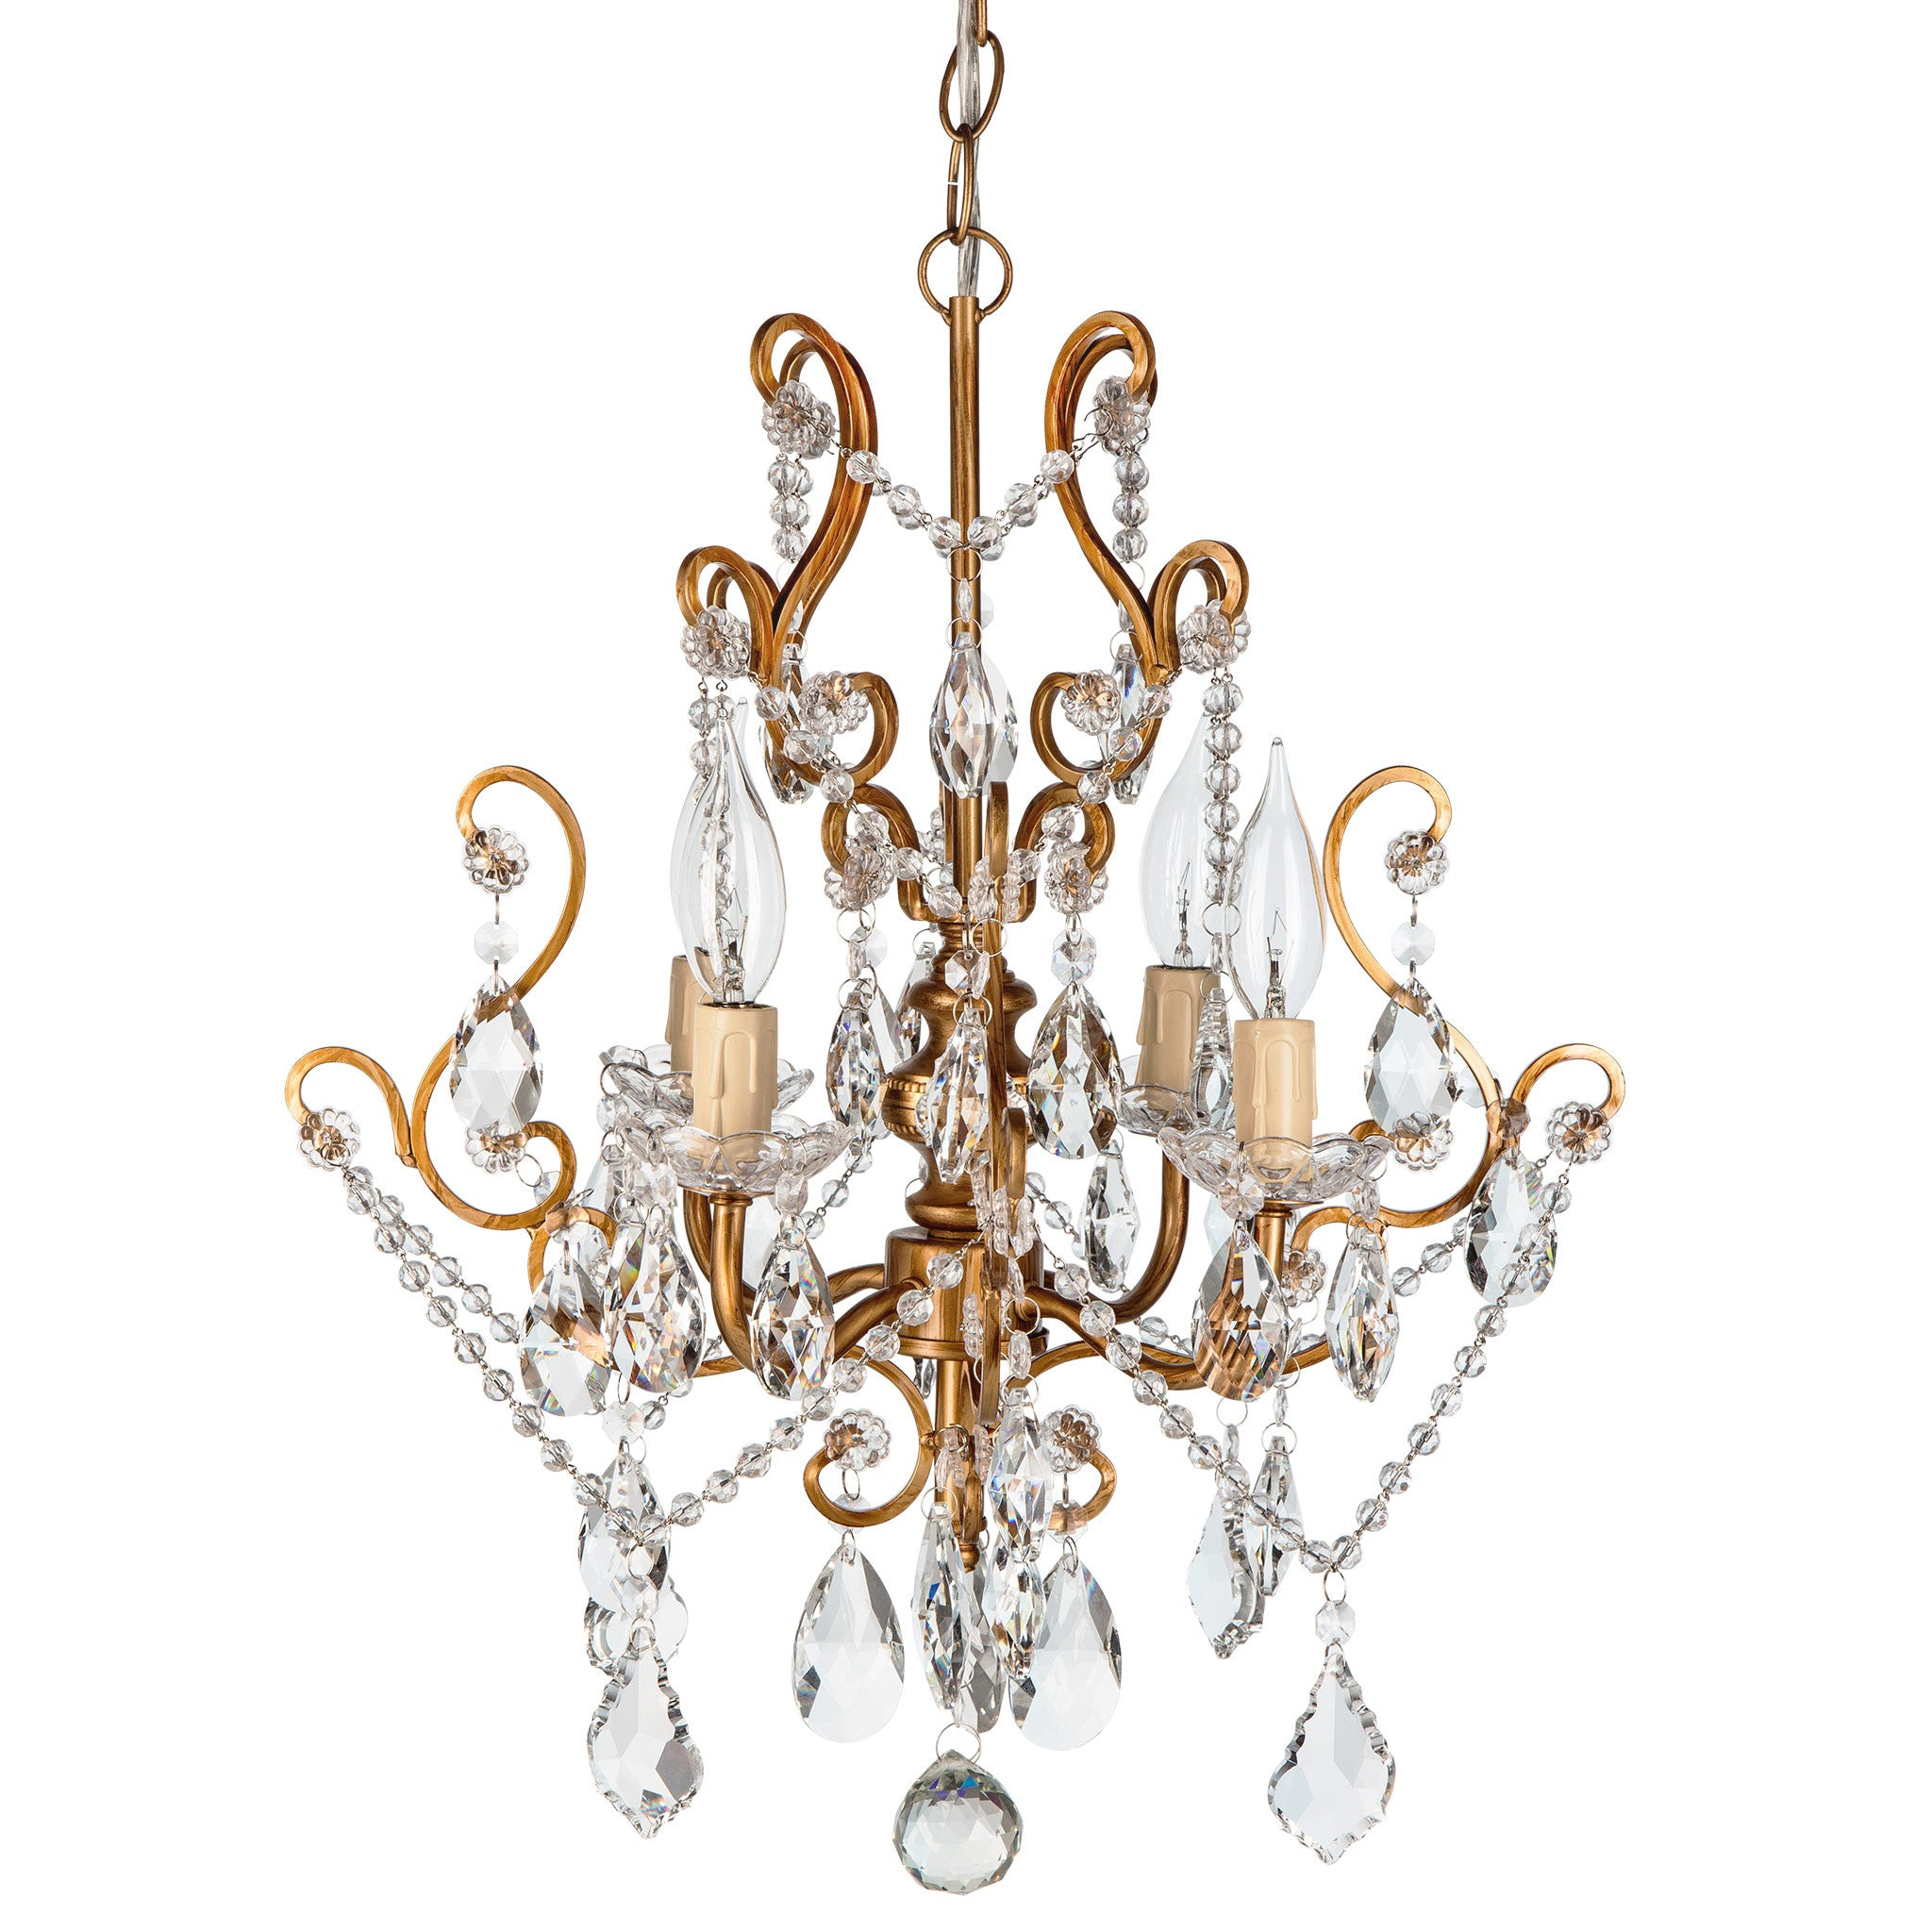 Amalfi Decor 4 Light Vintage Crystal Plug-In Chandelier (Gold) | Wrought Iron Frame with Glass Crystals